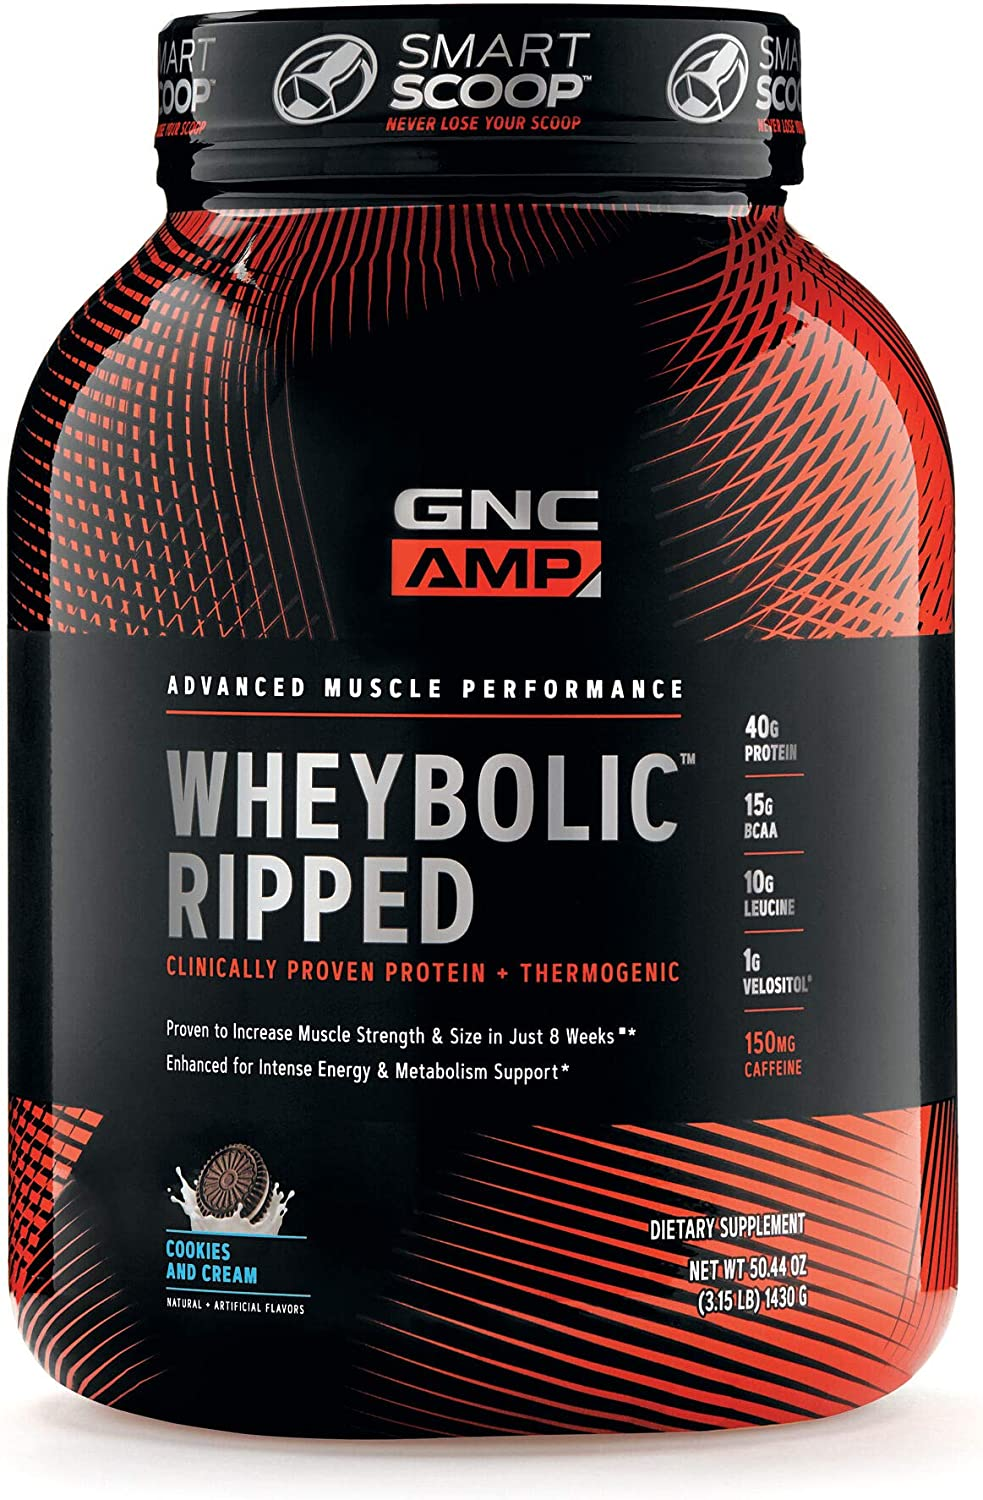 Amazon Com Gnc Amp Wheybolic Ripped Whey Protein Powder Cookies And Cream 22 Servings Contains 40g Protein And 15g Bcaa Per Serving Health Personal Care,Dog Seizures Signs